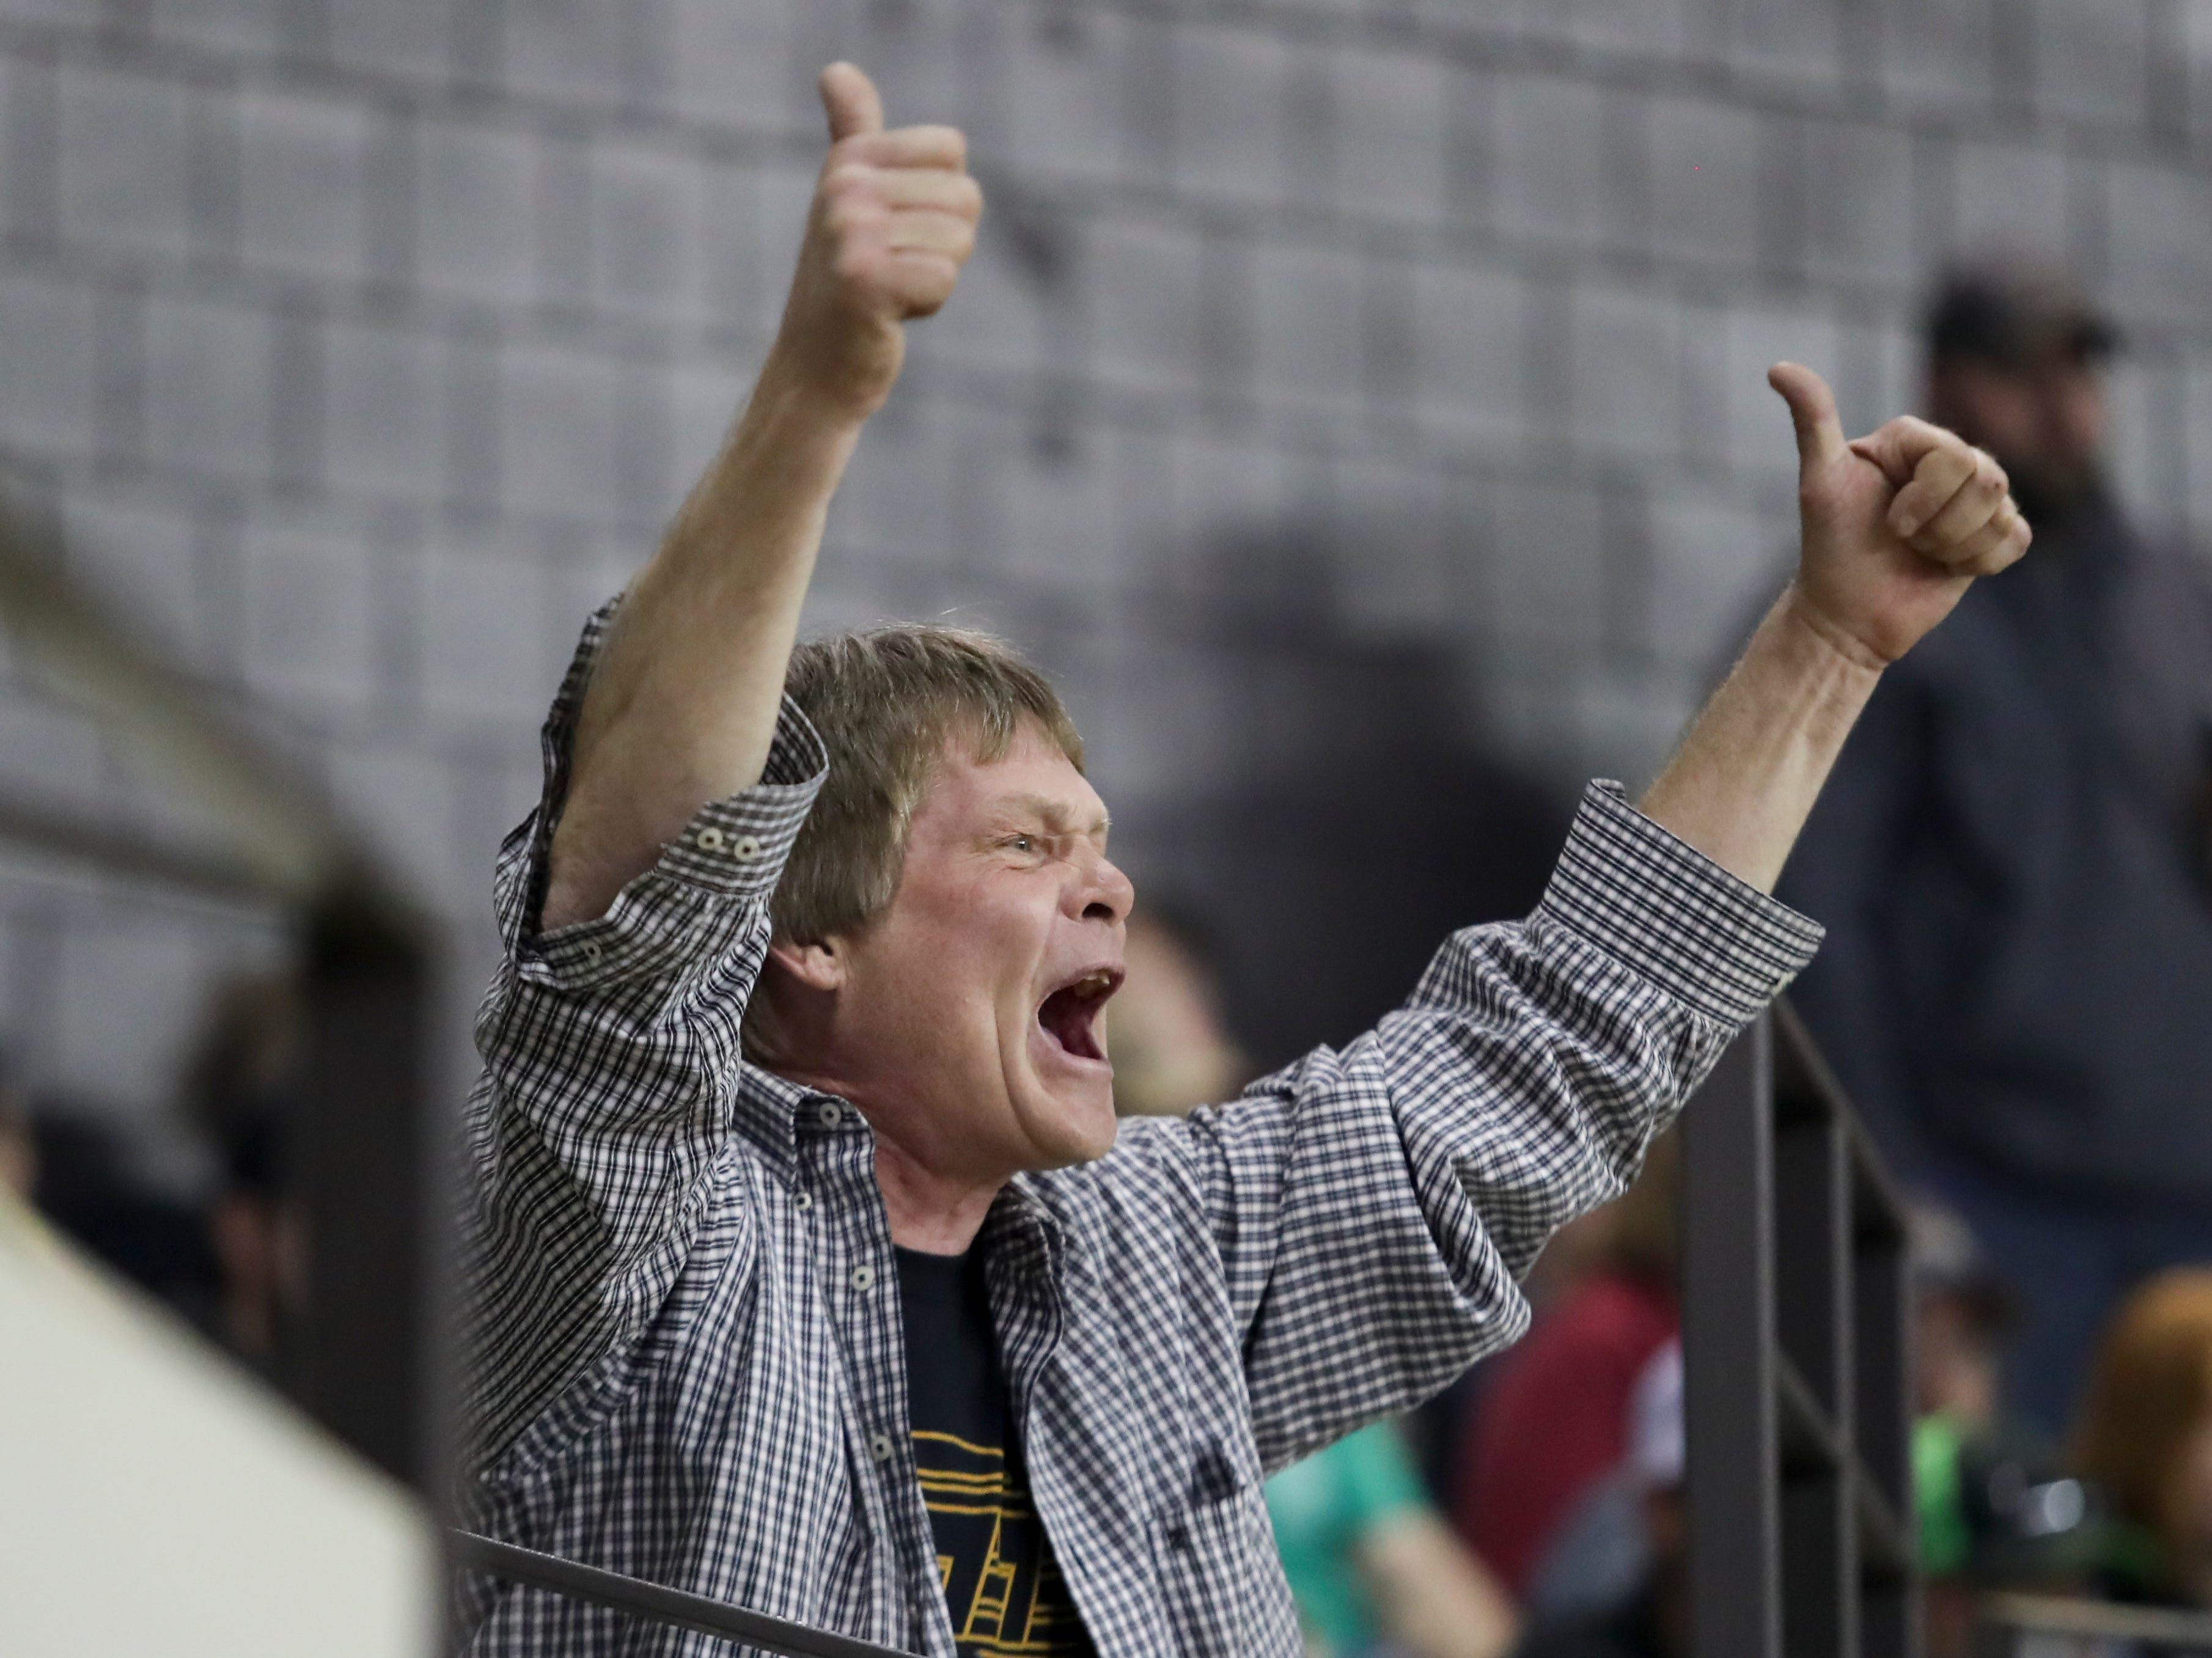 Fans cheered on their favorite drivers at the 4th annual Bluegrass Bash Demolition Derby in Freedom Hall on March 23.